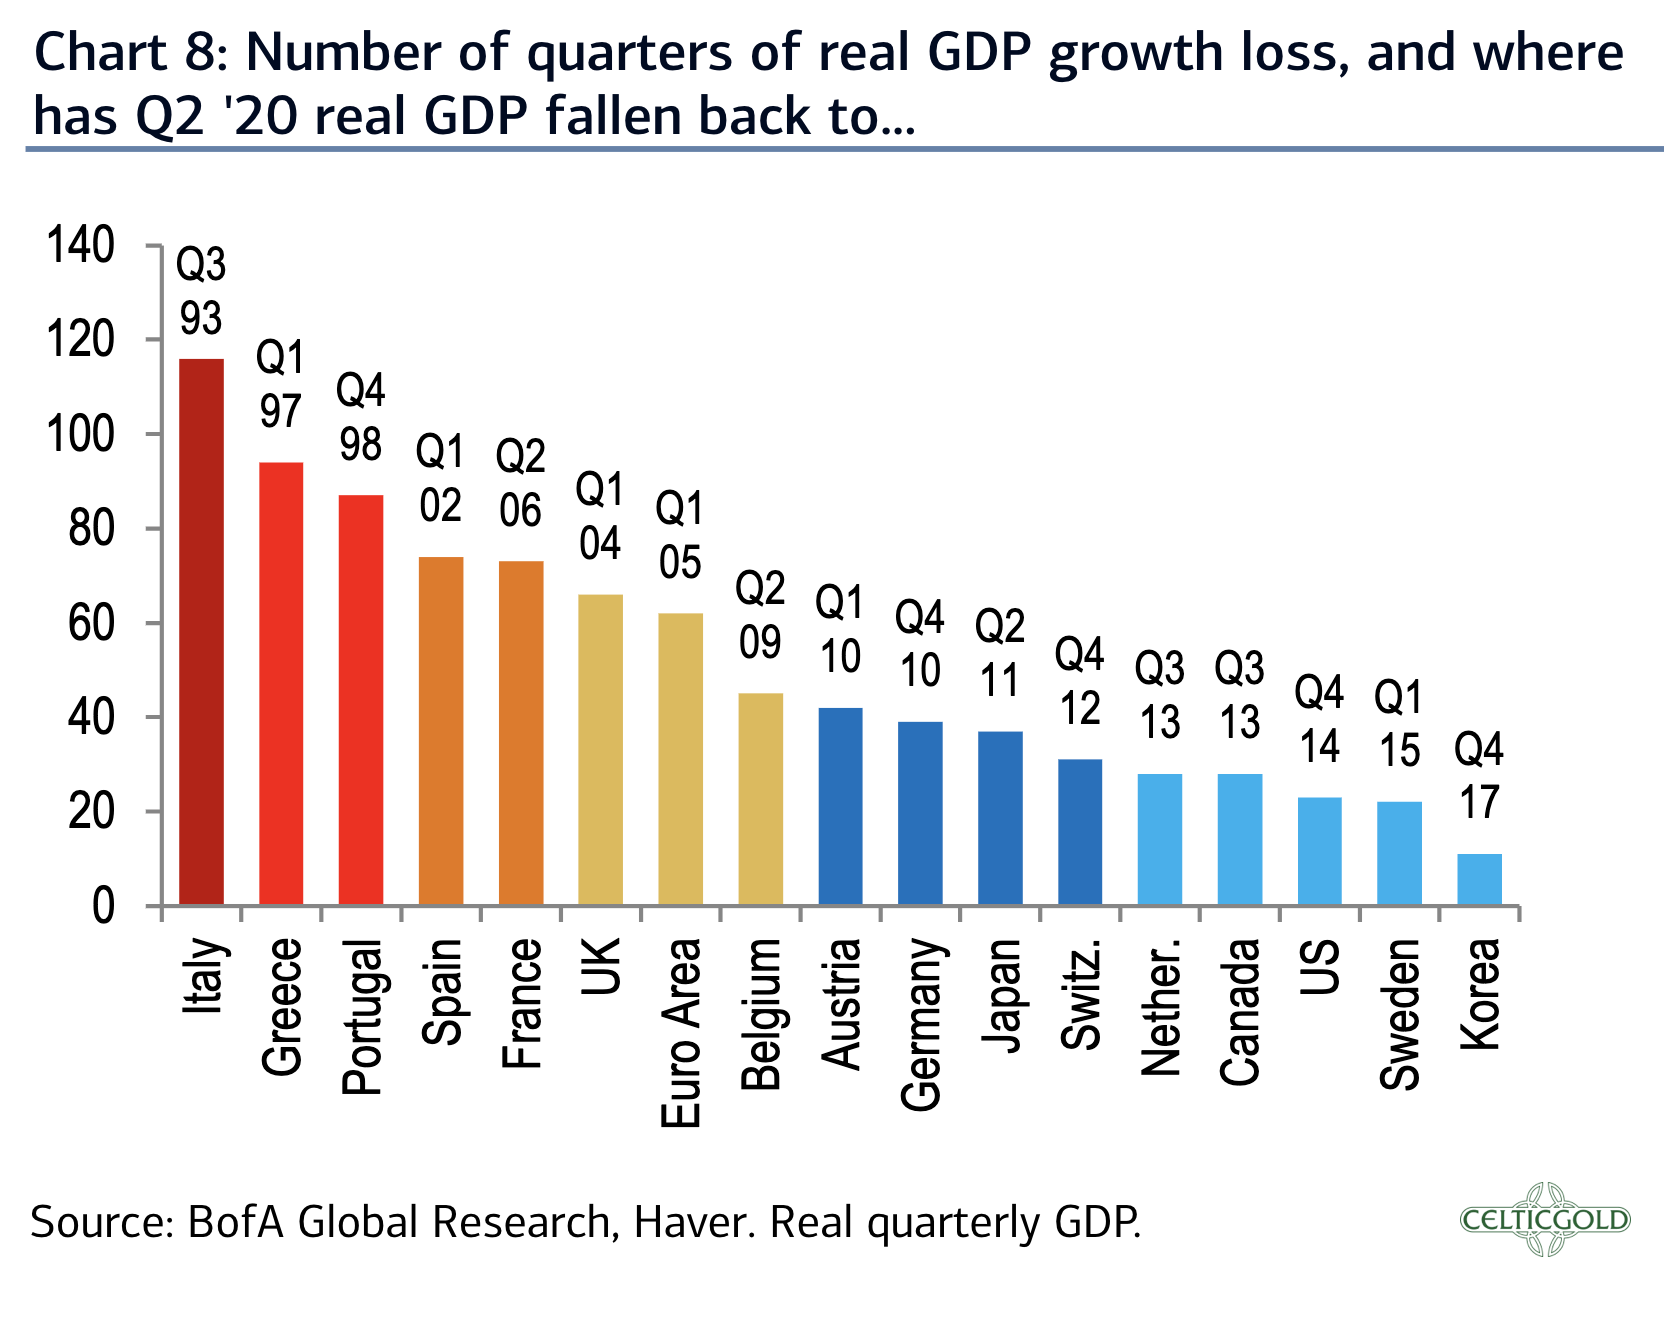 Source: BofA Global research, 7th of August 2020